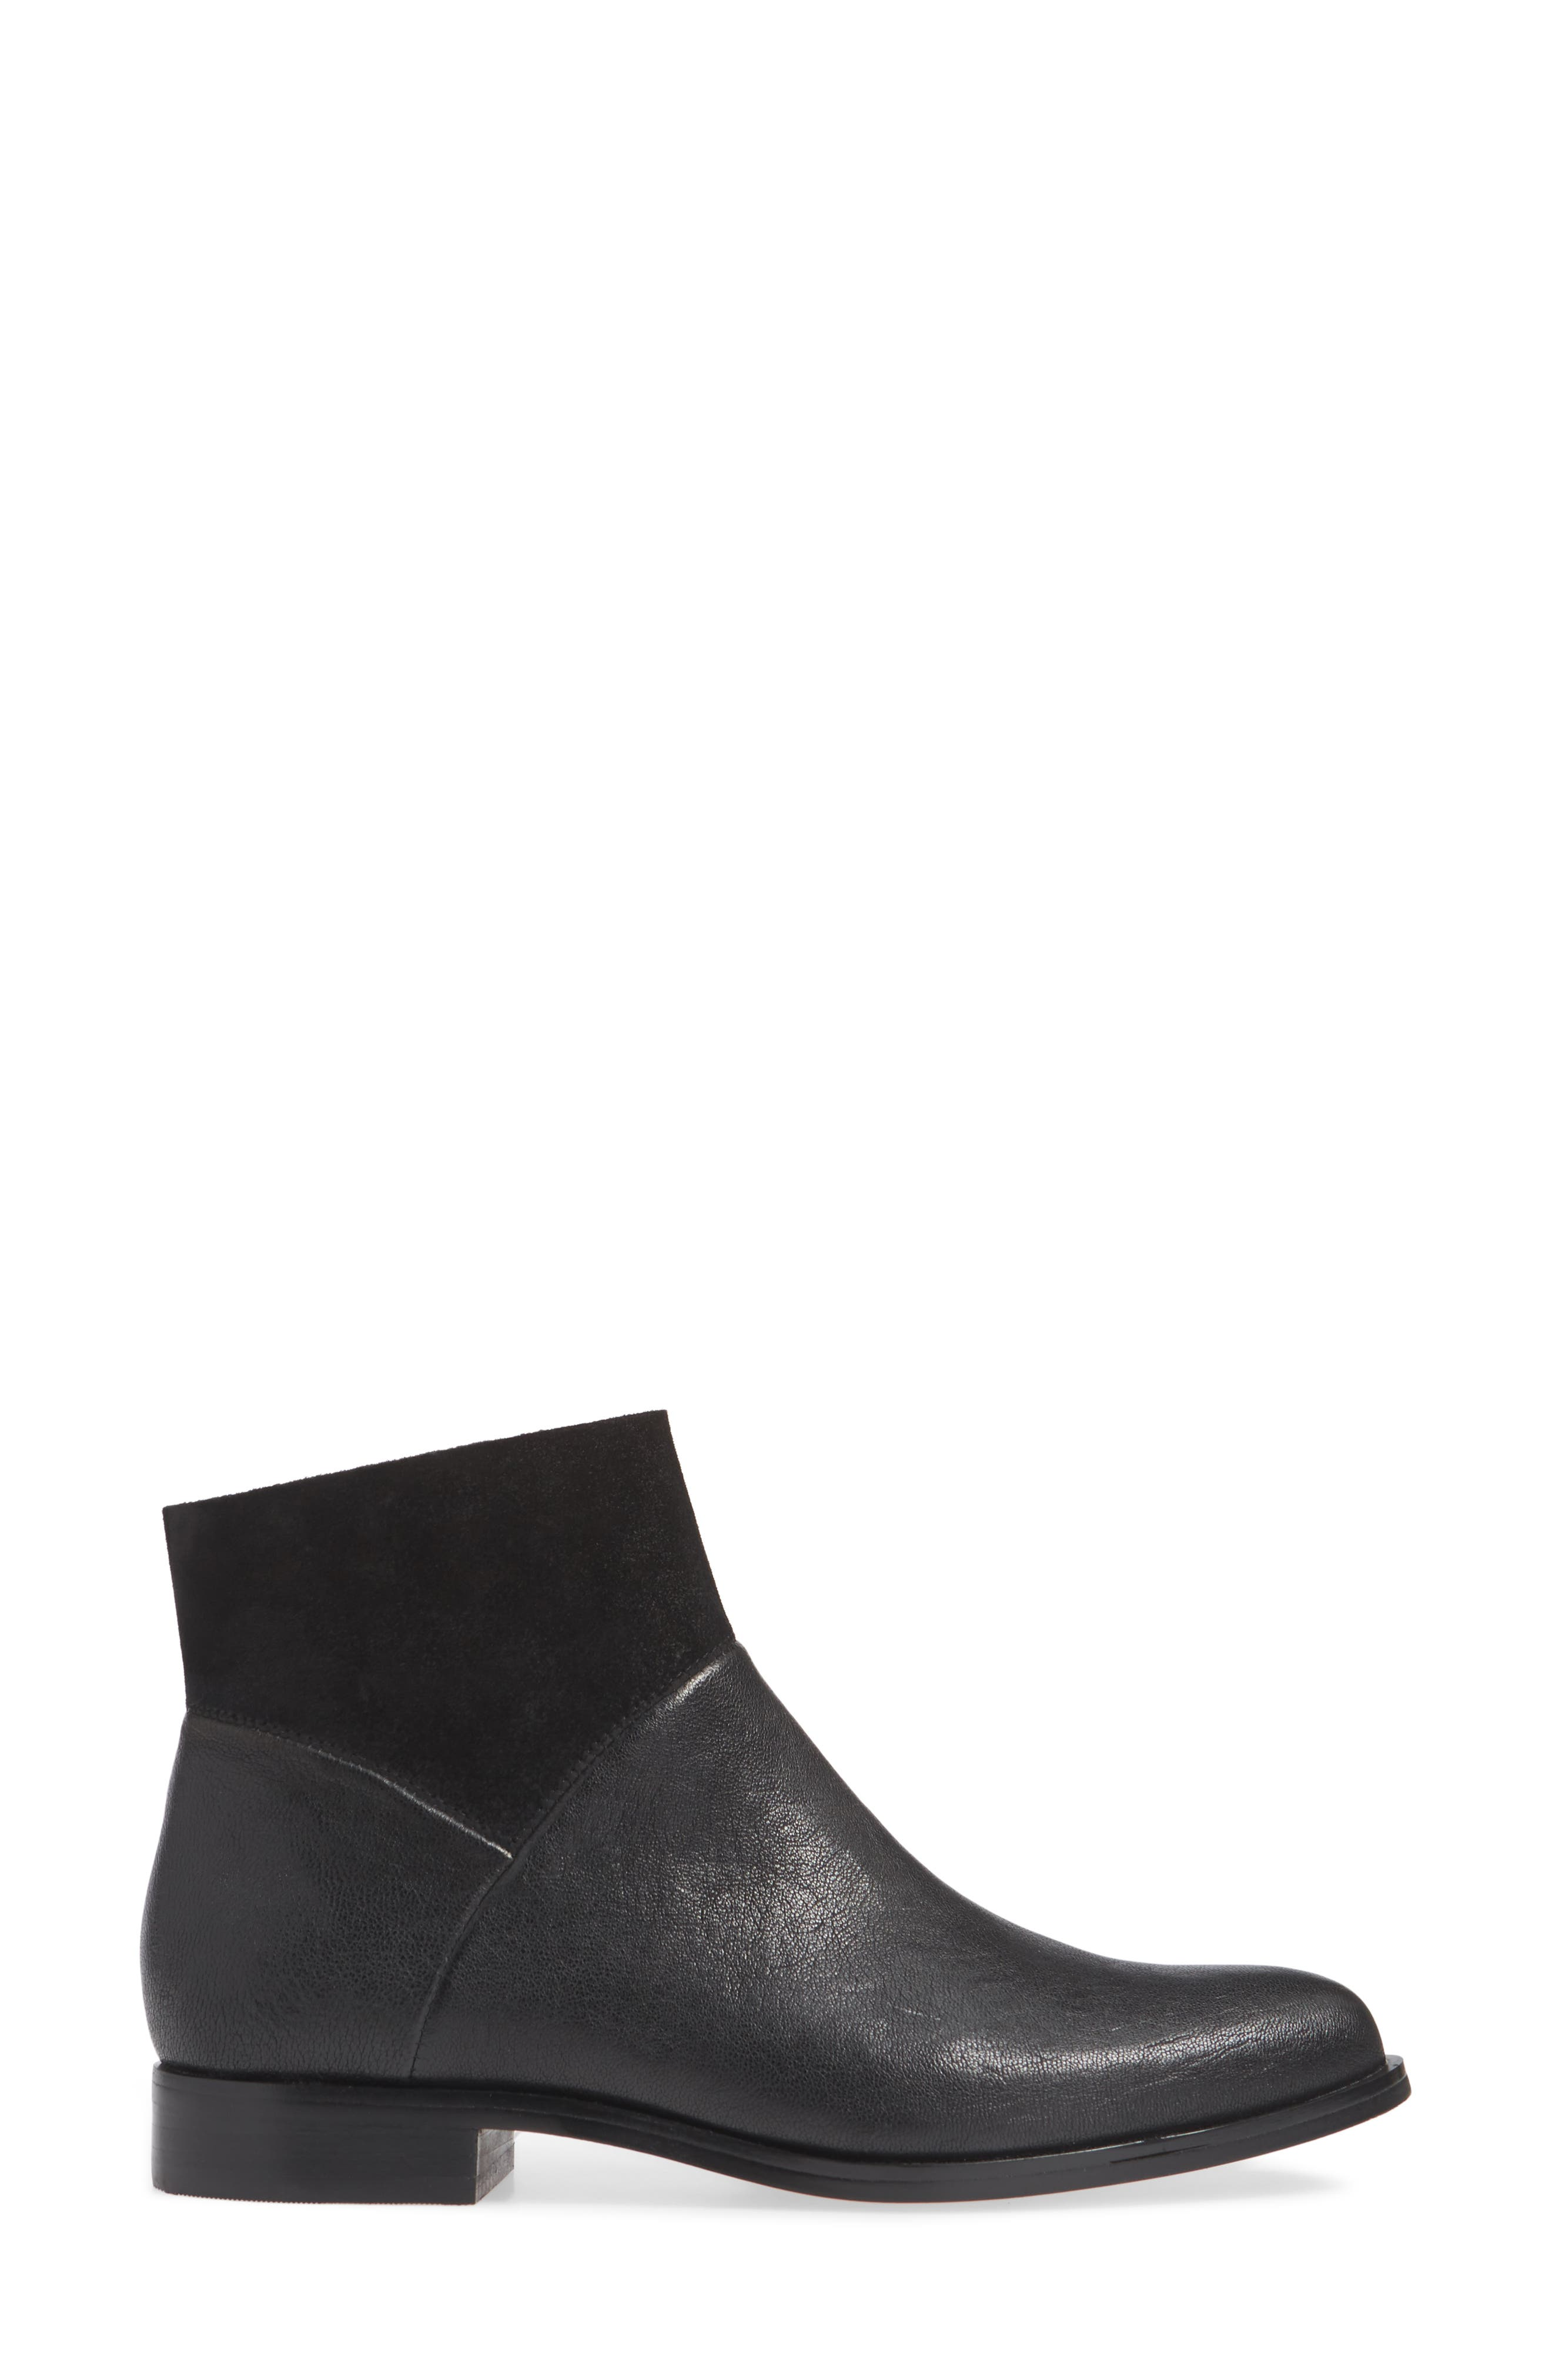 ISOLÁ, Isola Mosina Bootie, Alternate thumbnail 3, color, BLACK LEATHER